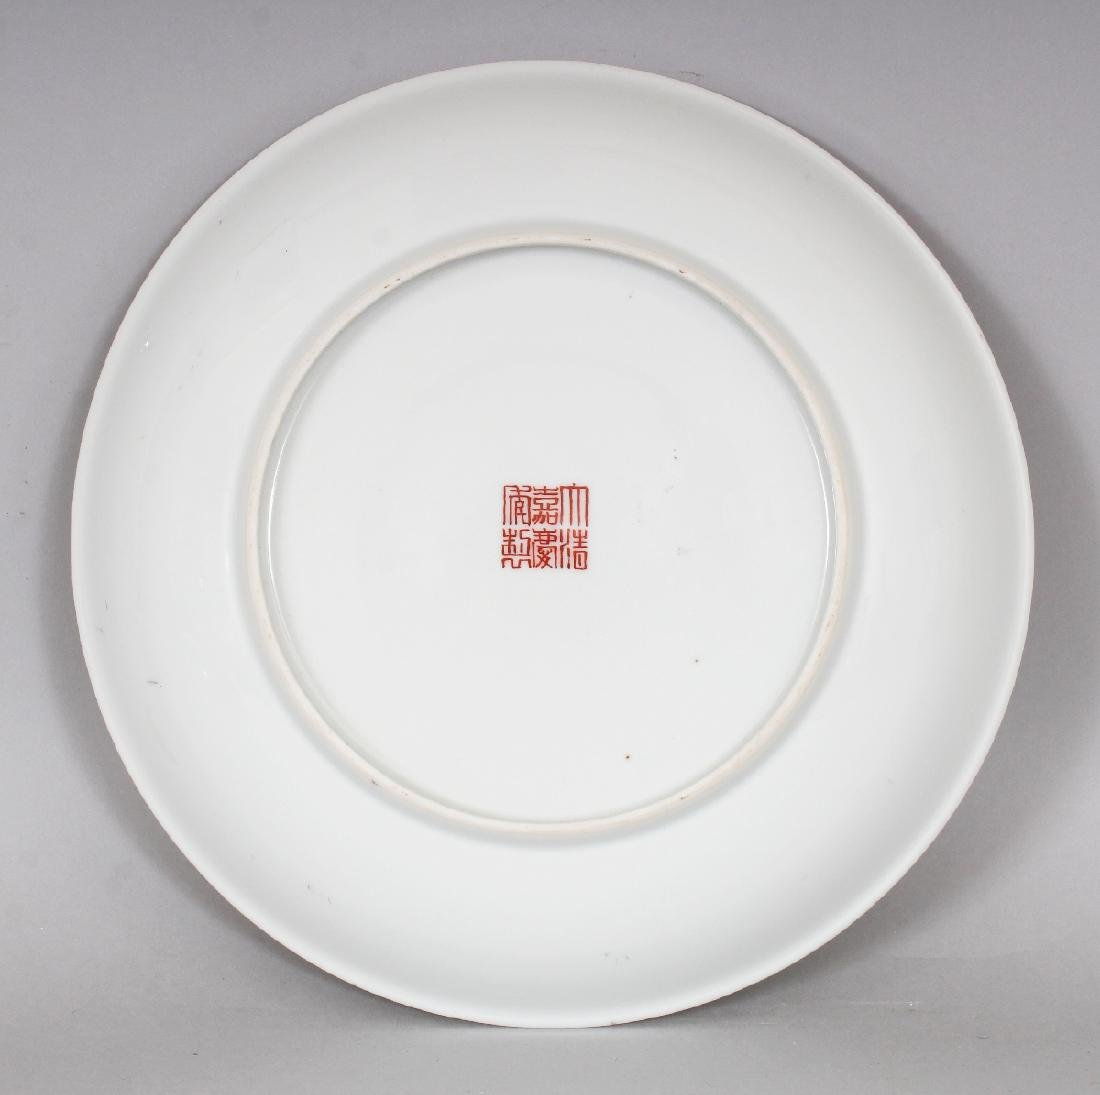 A CHINESE LEMON YELLOW GLAZED PORCELAIN SAUCER DISH, - 2